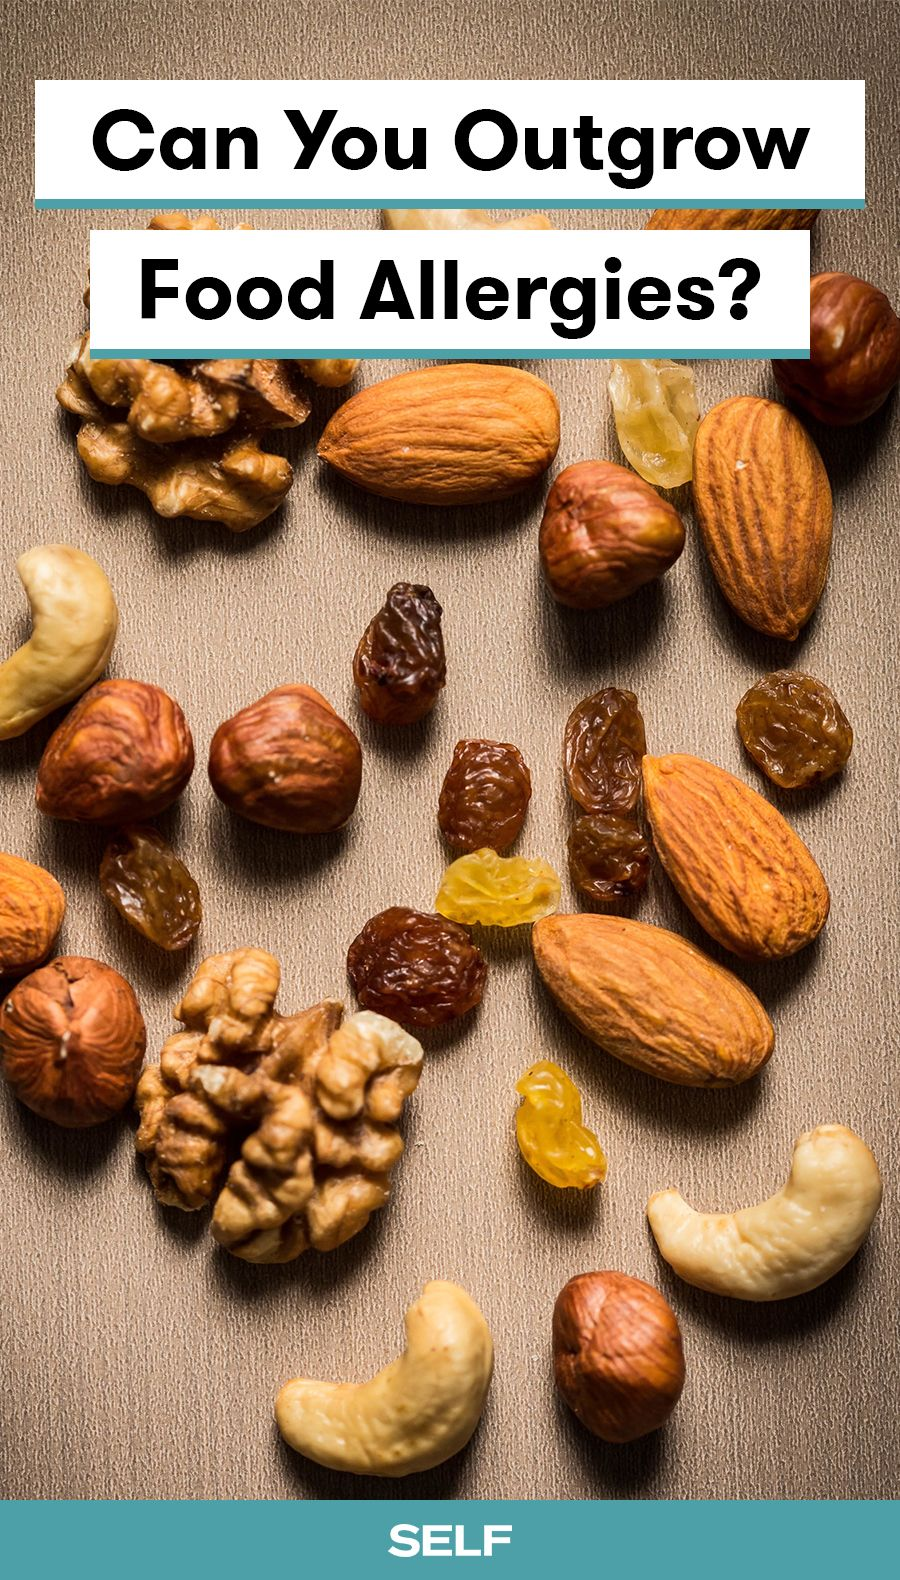 Can You Outgrow a Food Allergy? Signs of food allergies